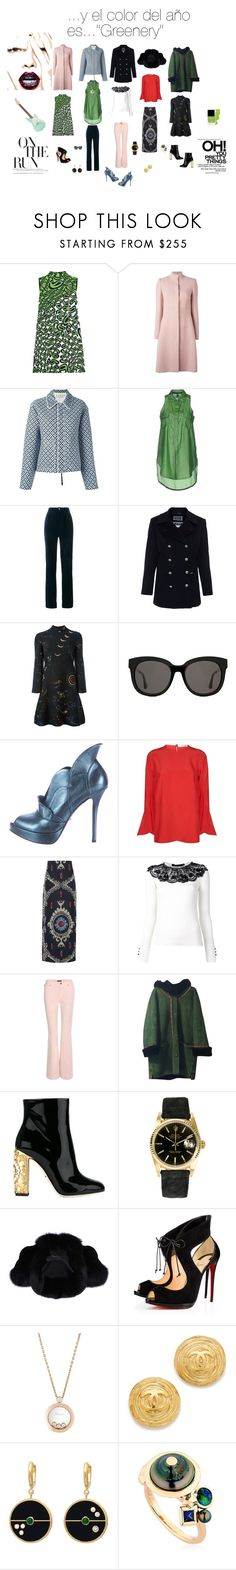 """...Y el color del año es....""Greenery"""" by angiecip on Polyvore featuring moda, Miu Miu, Alexander McQueen, Marni, Manila Grace, Gucci, Saint James, Valentino, Gentle Monster y Jerome C. Rousseau"